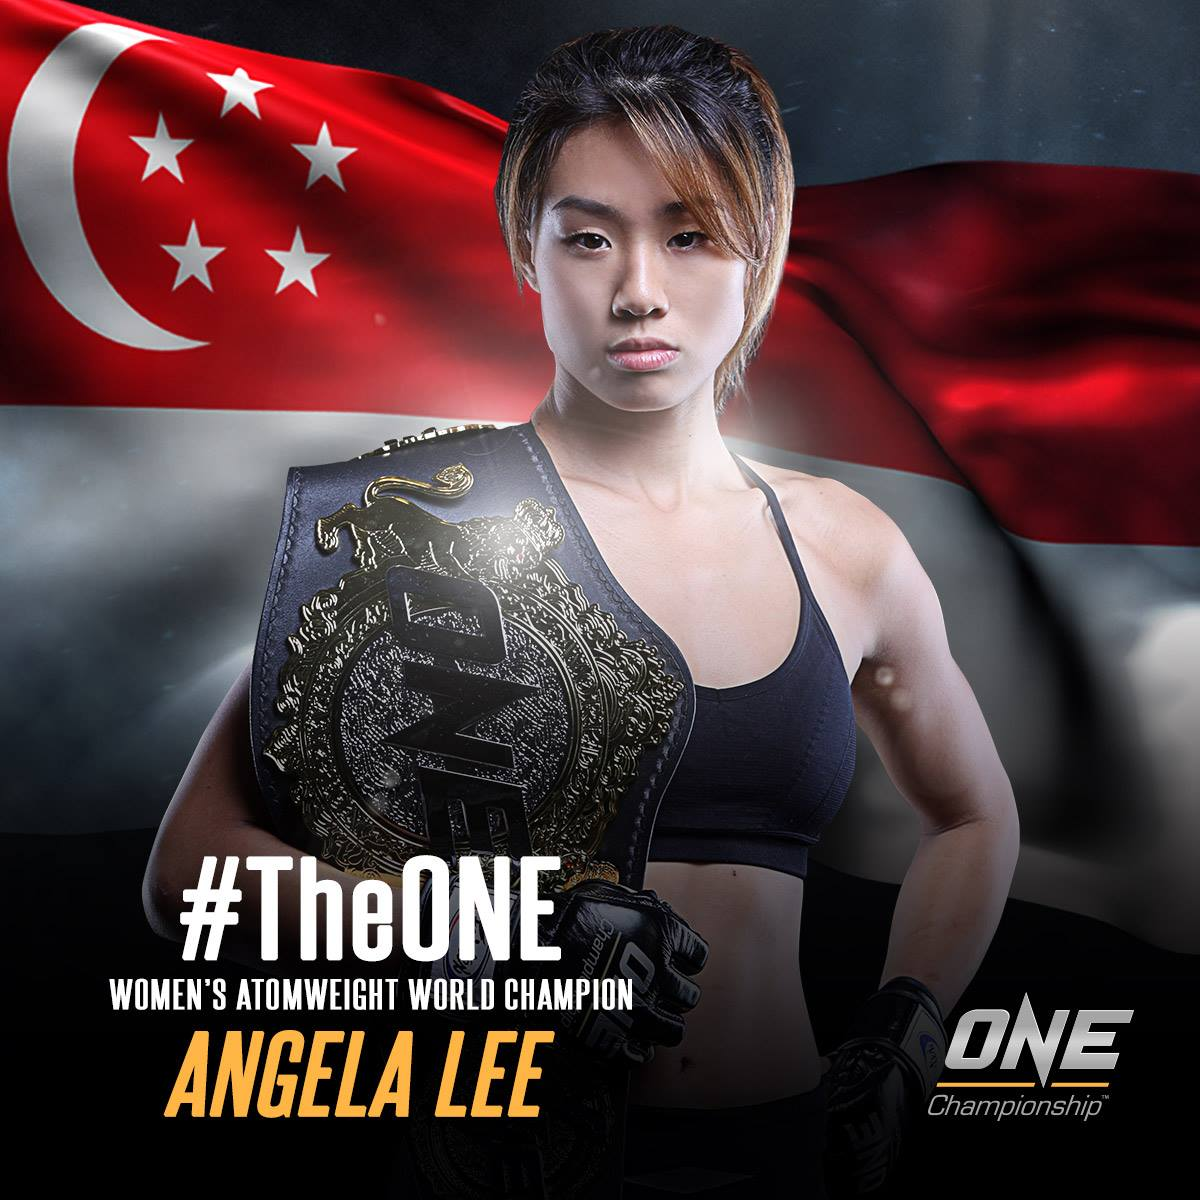 Congrats to 19 year old Angela Lee on becoming the youngest MMA World Champion in history! @Unstoppable_Lee https://t.co/F6jmwofEpO